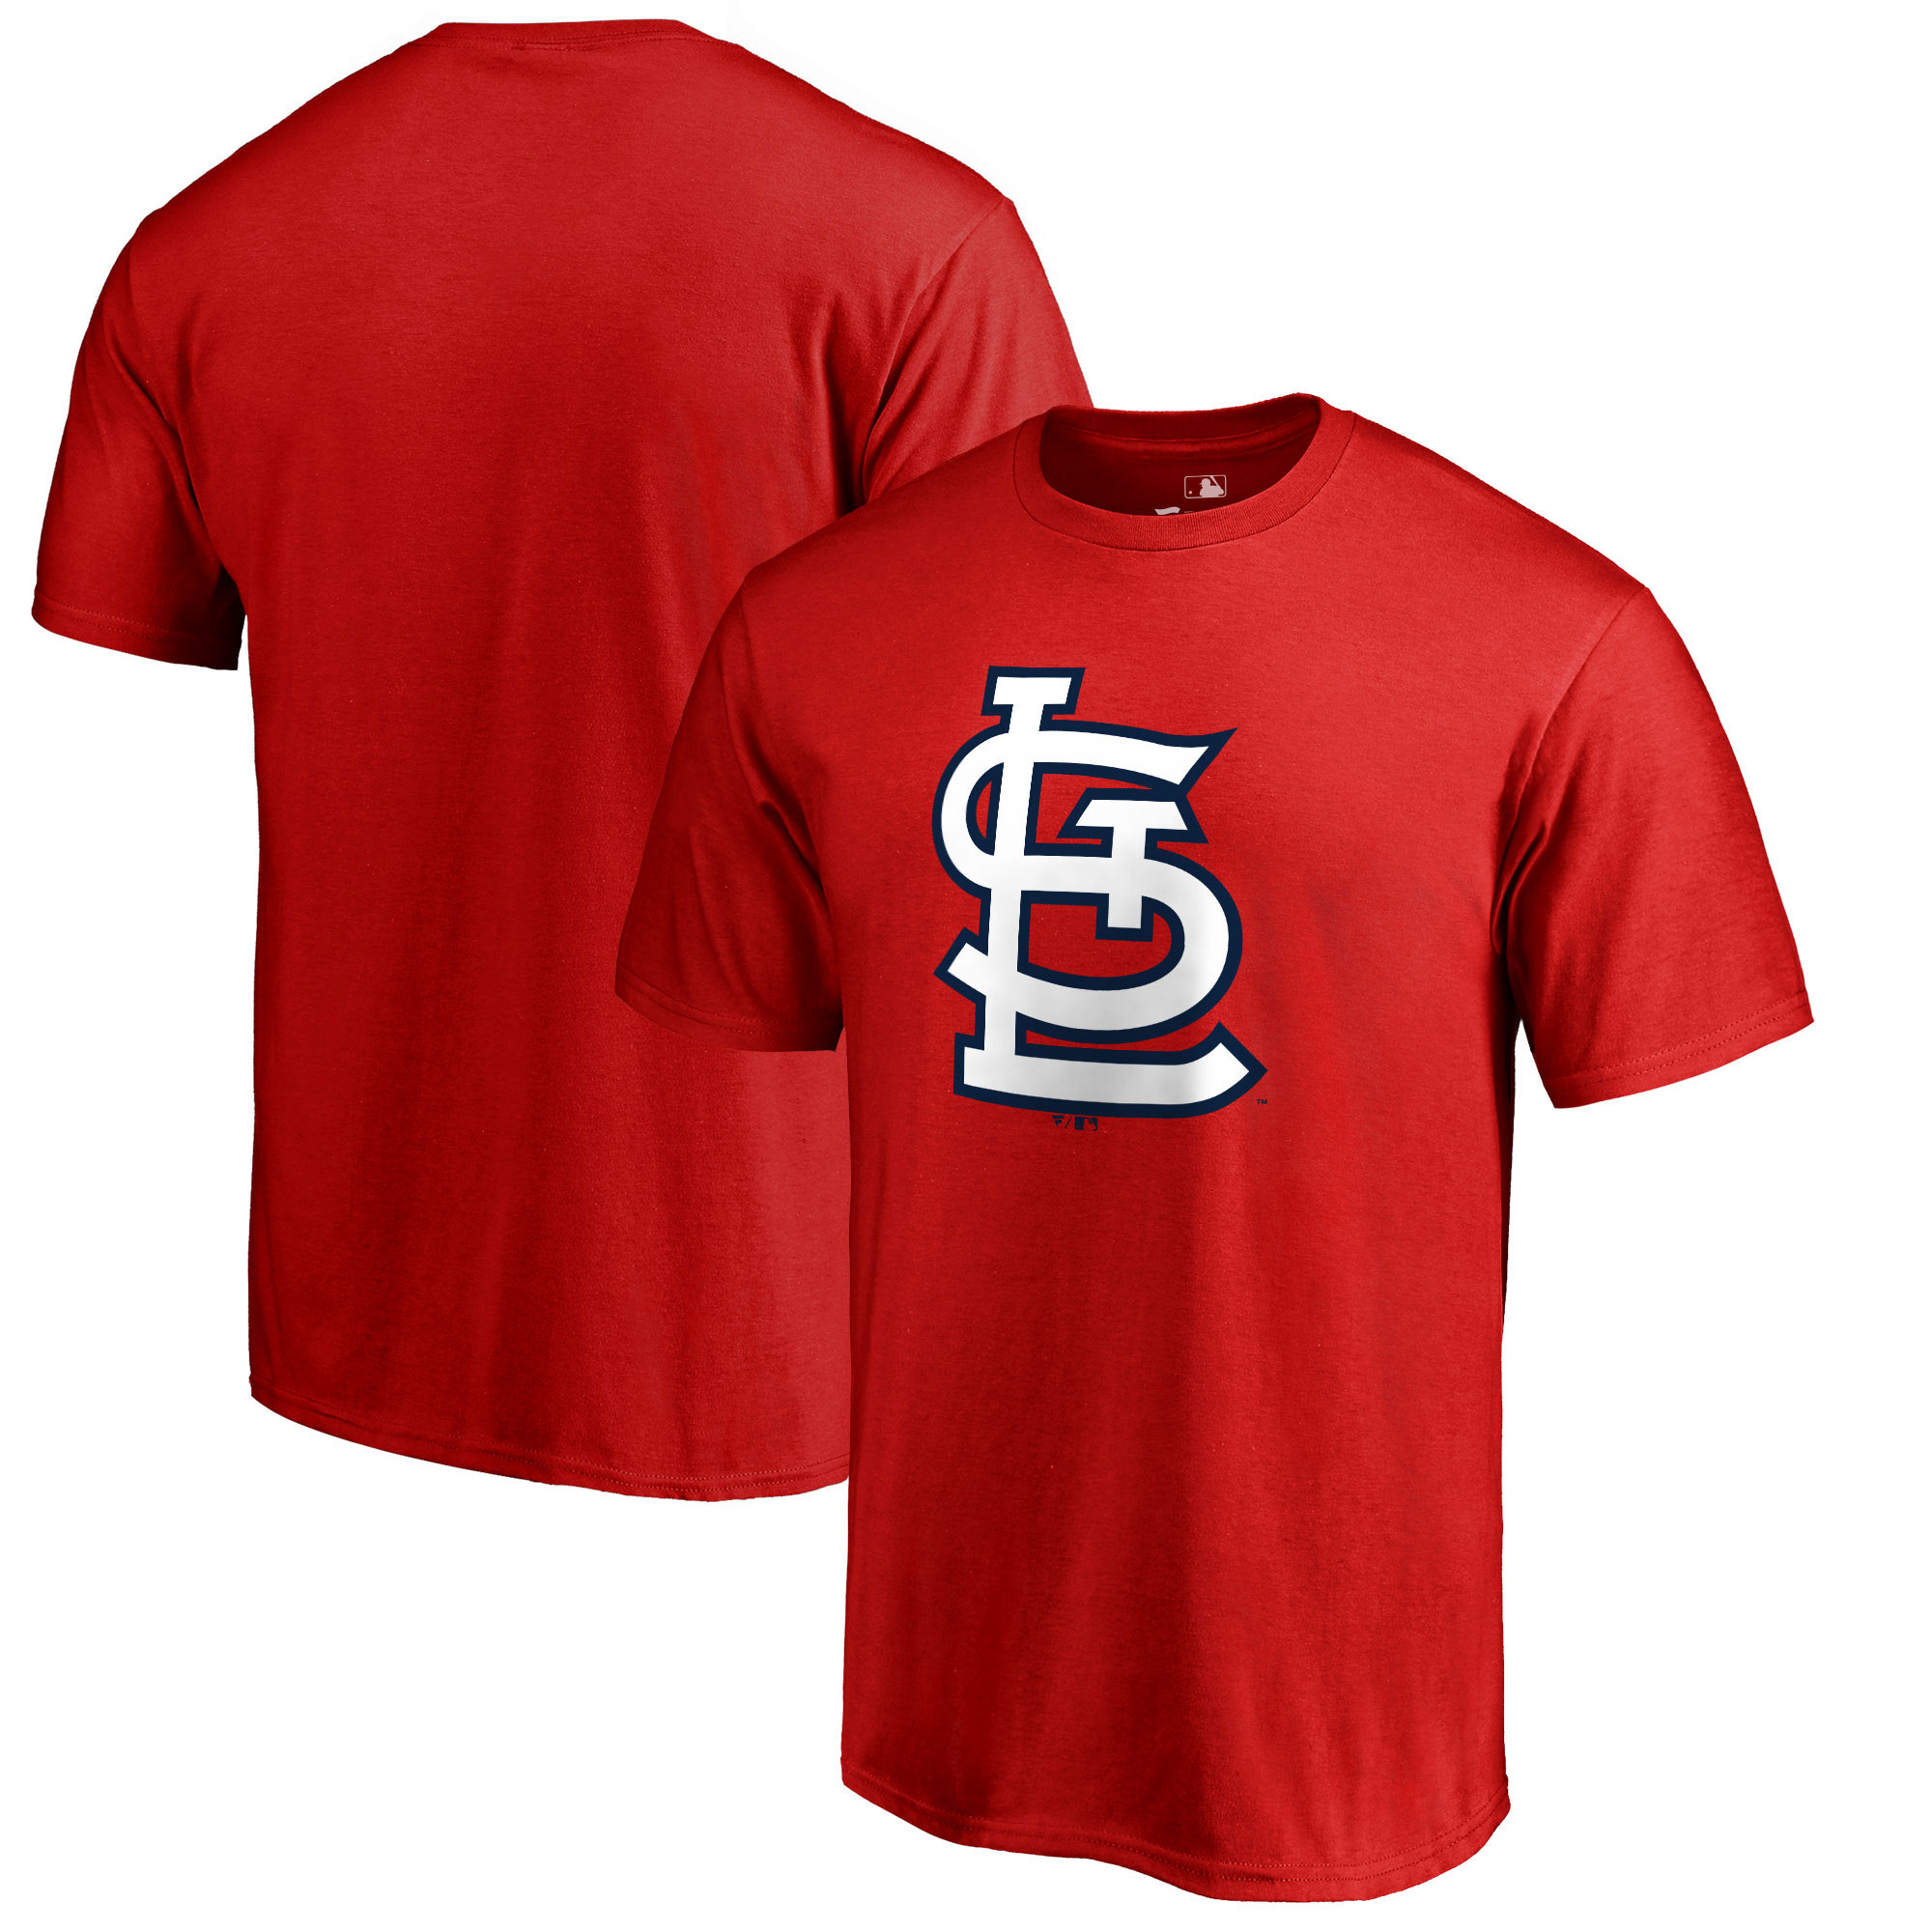 St. Louis Cardinals Primary Logo T-Shirt - Red